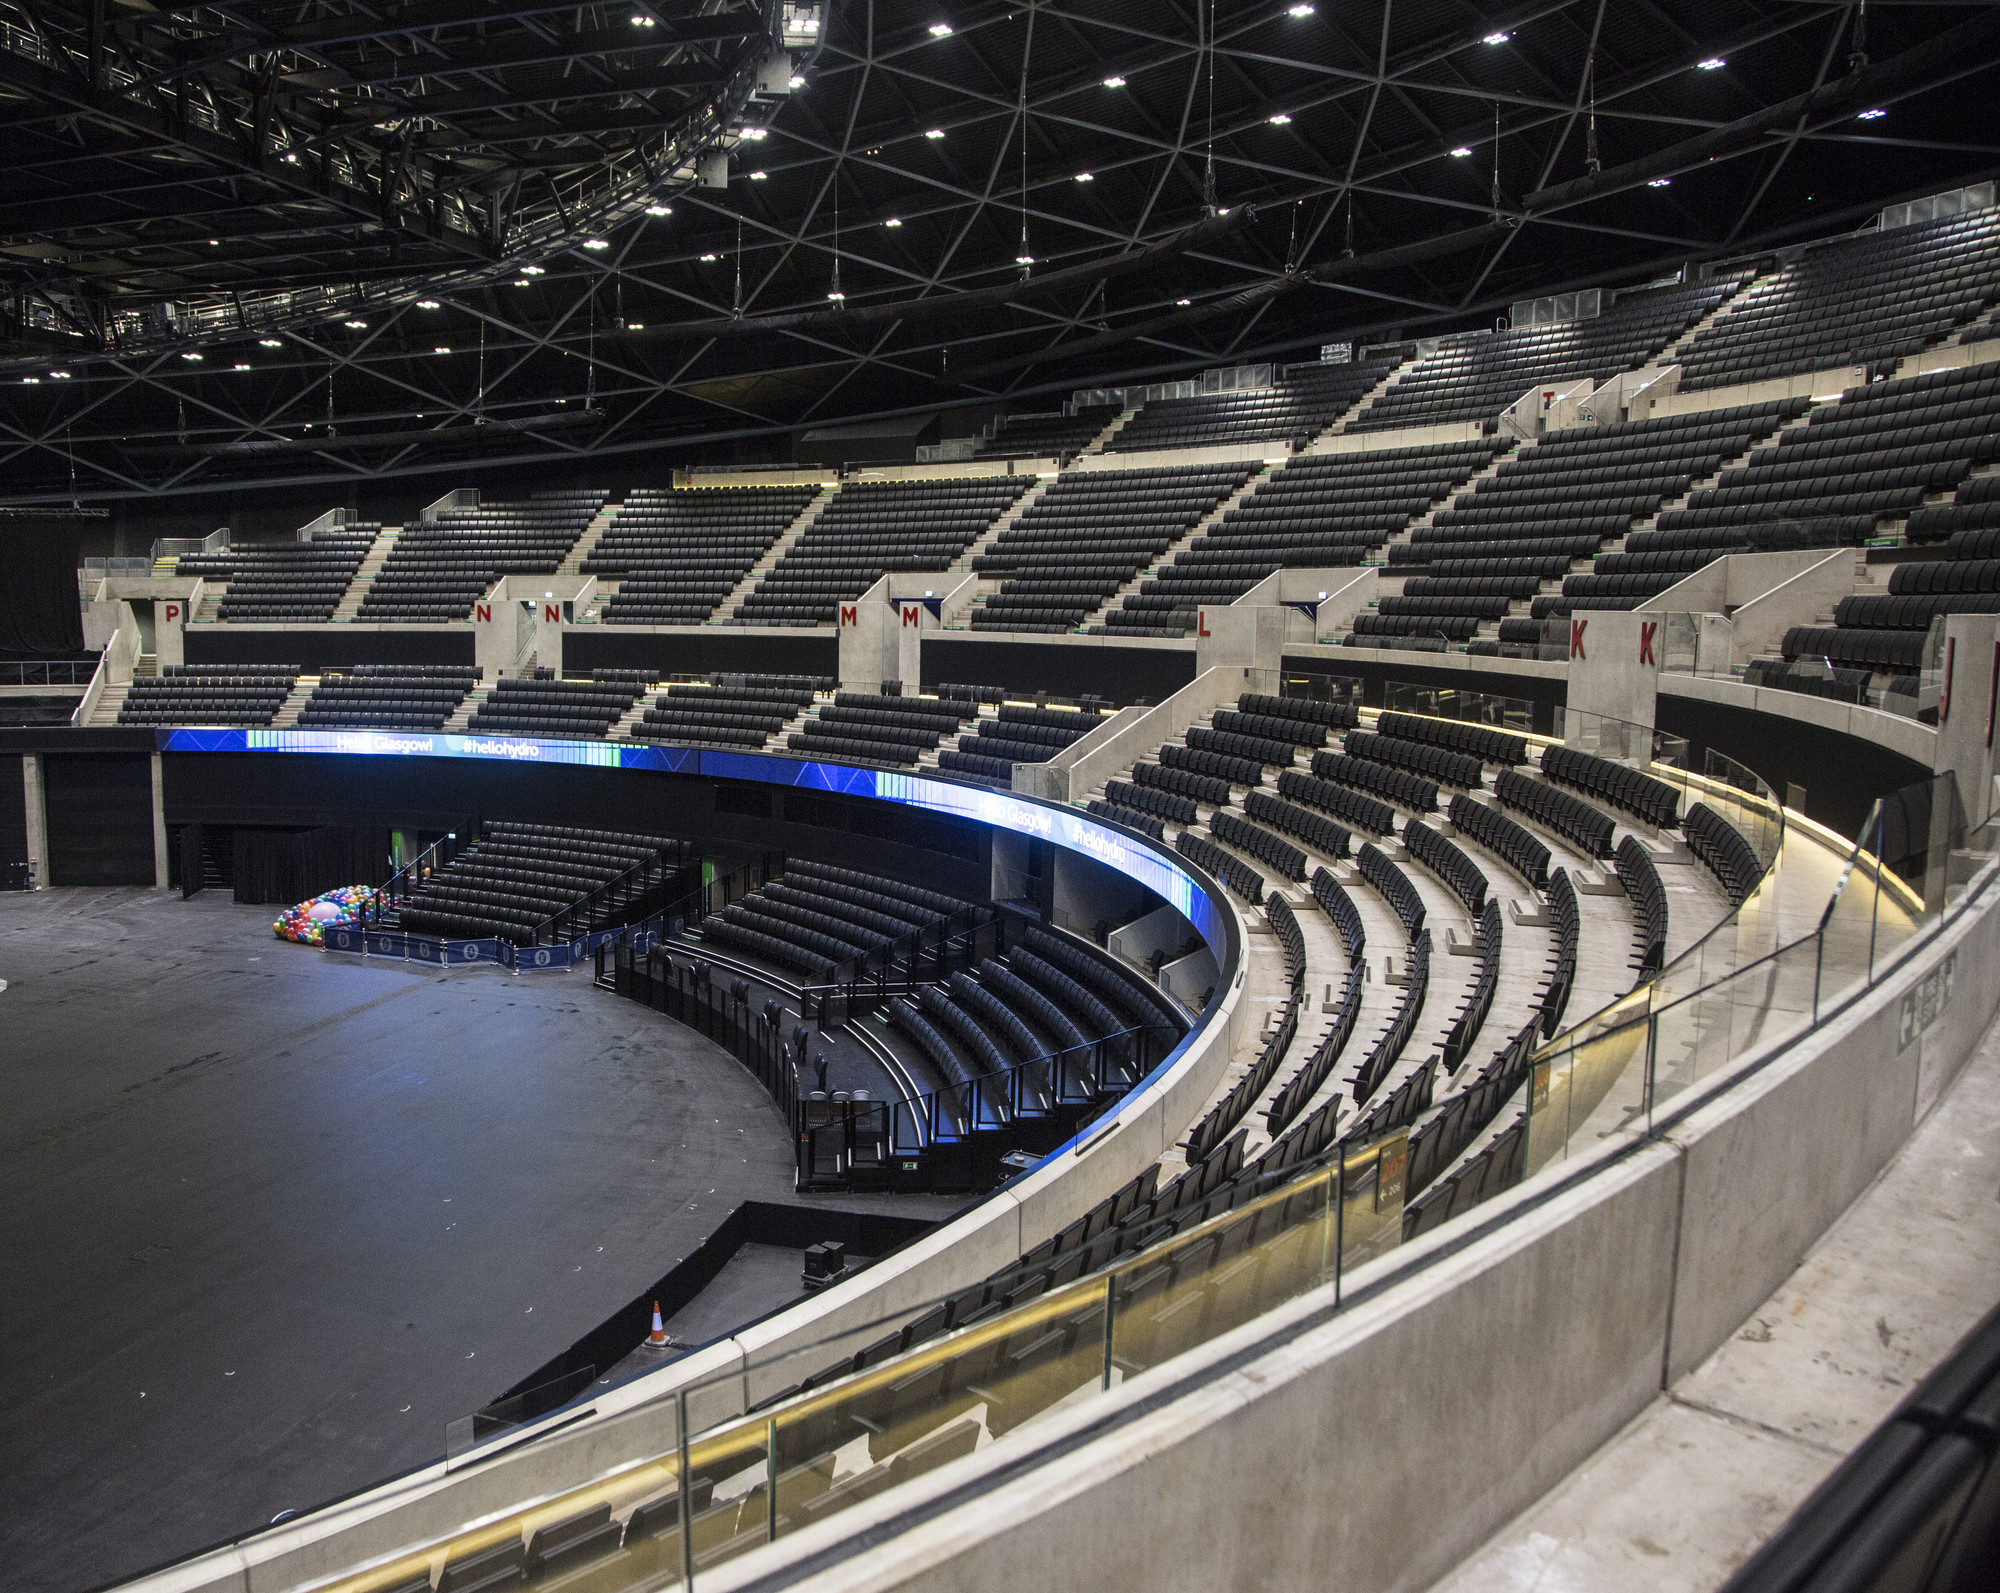 Foster partners sse hydro arena features translucent skin innovative seating system courtesy